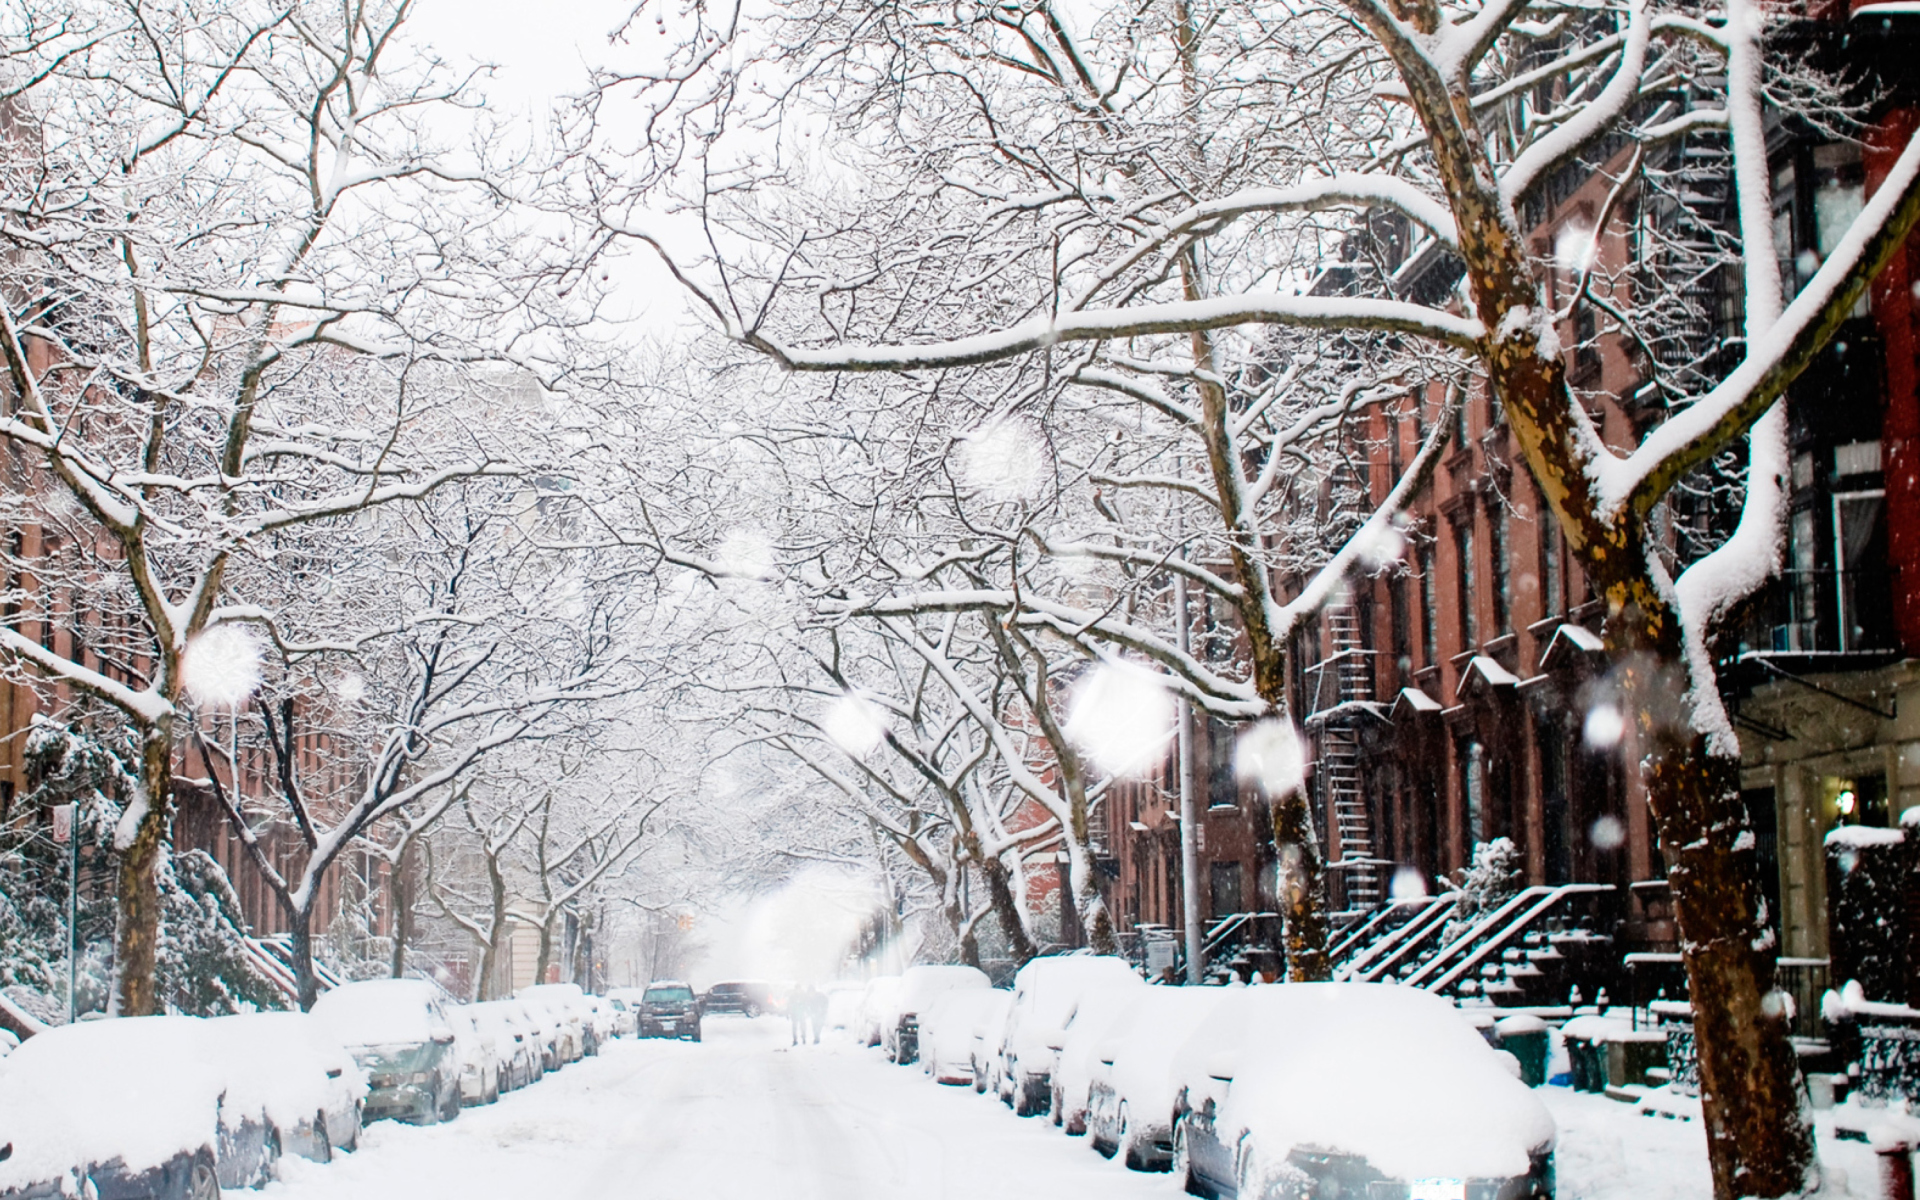 Winter on new york streets wallpaper for widescreen - Nyc winter wallpaper hd ...